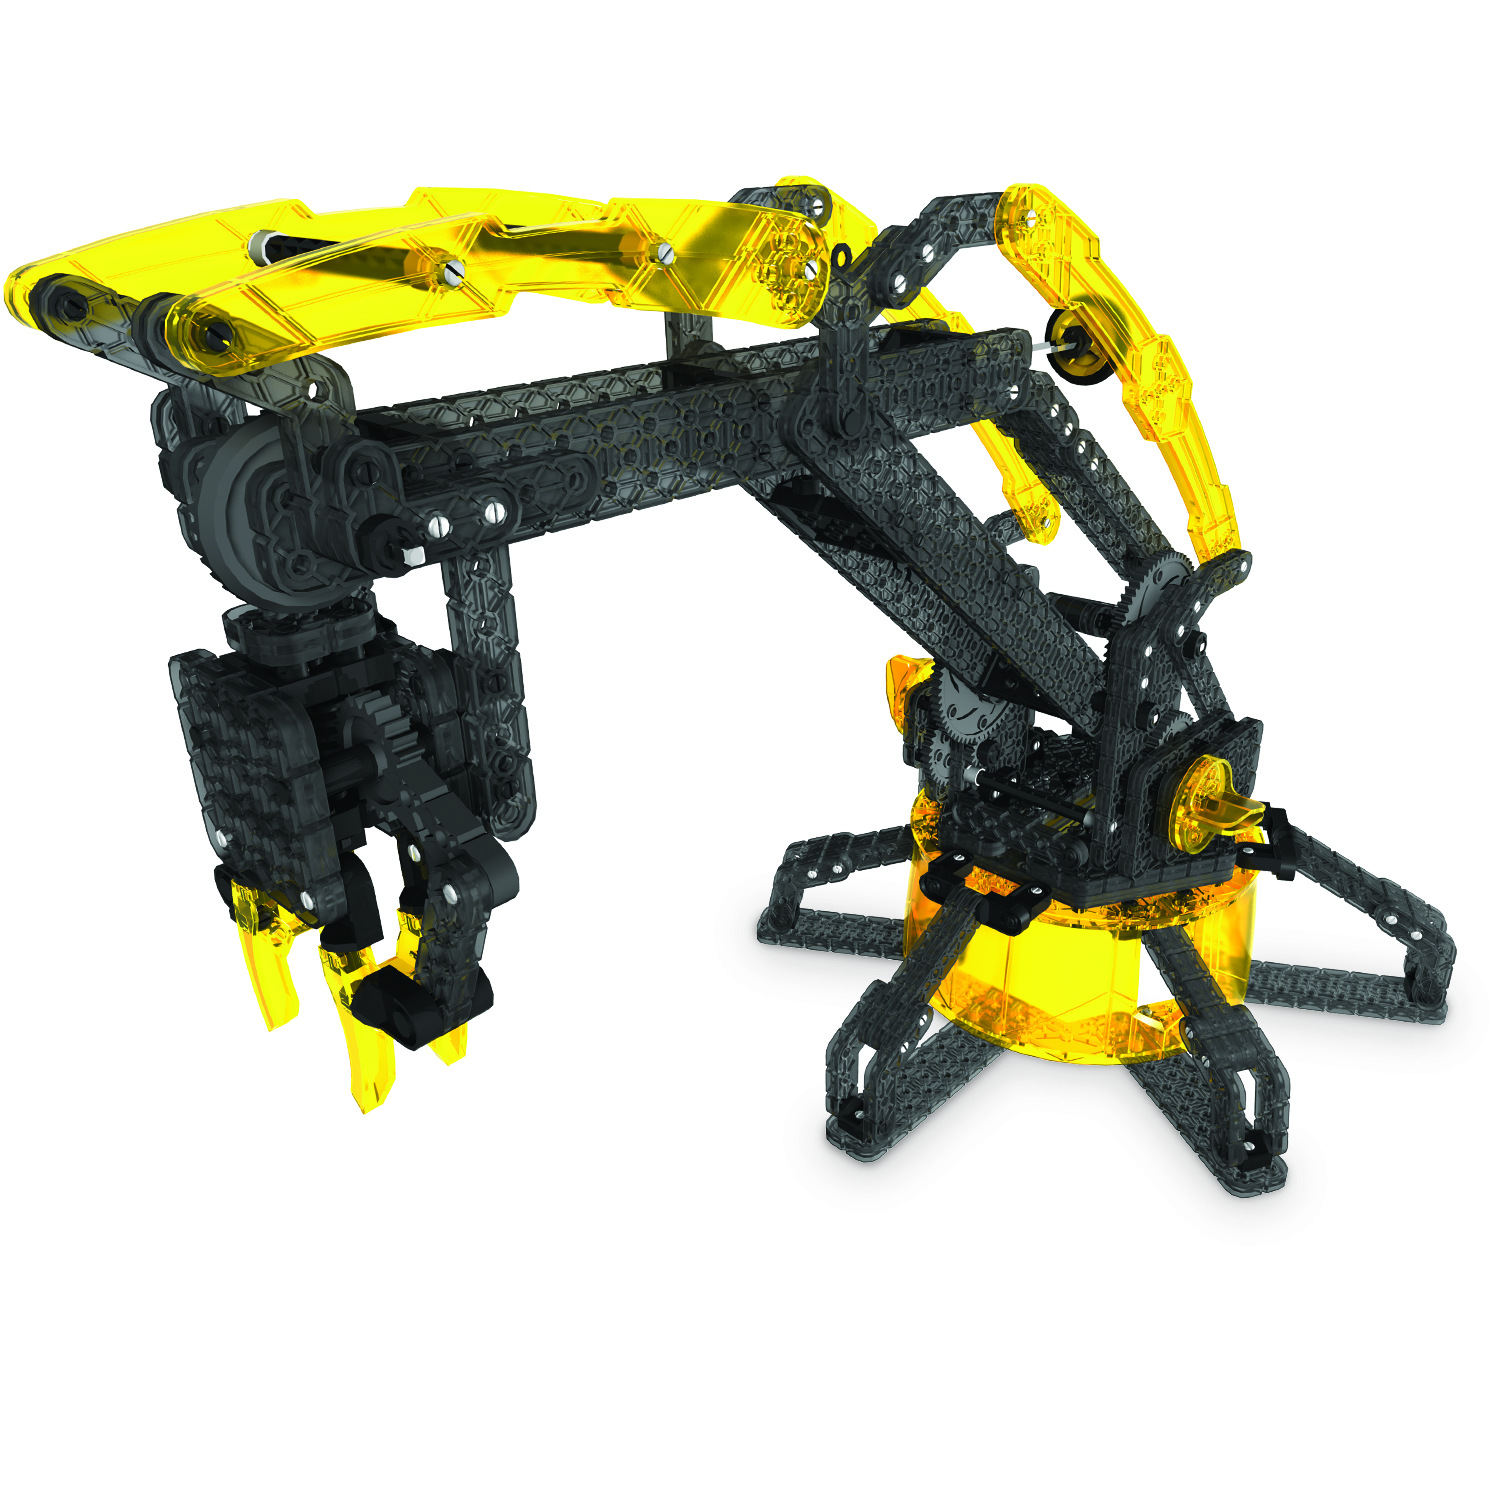 Stem Based Play With Hexbug Vex Robotics Robotic Arm Thrifty And